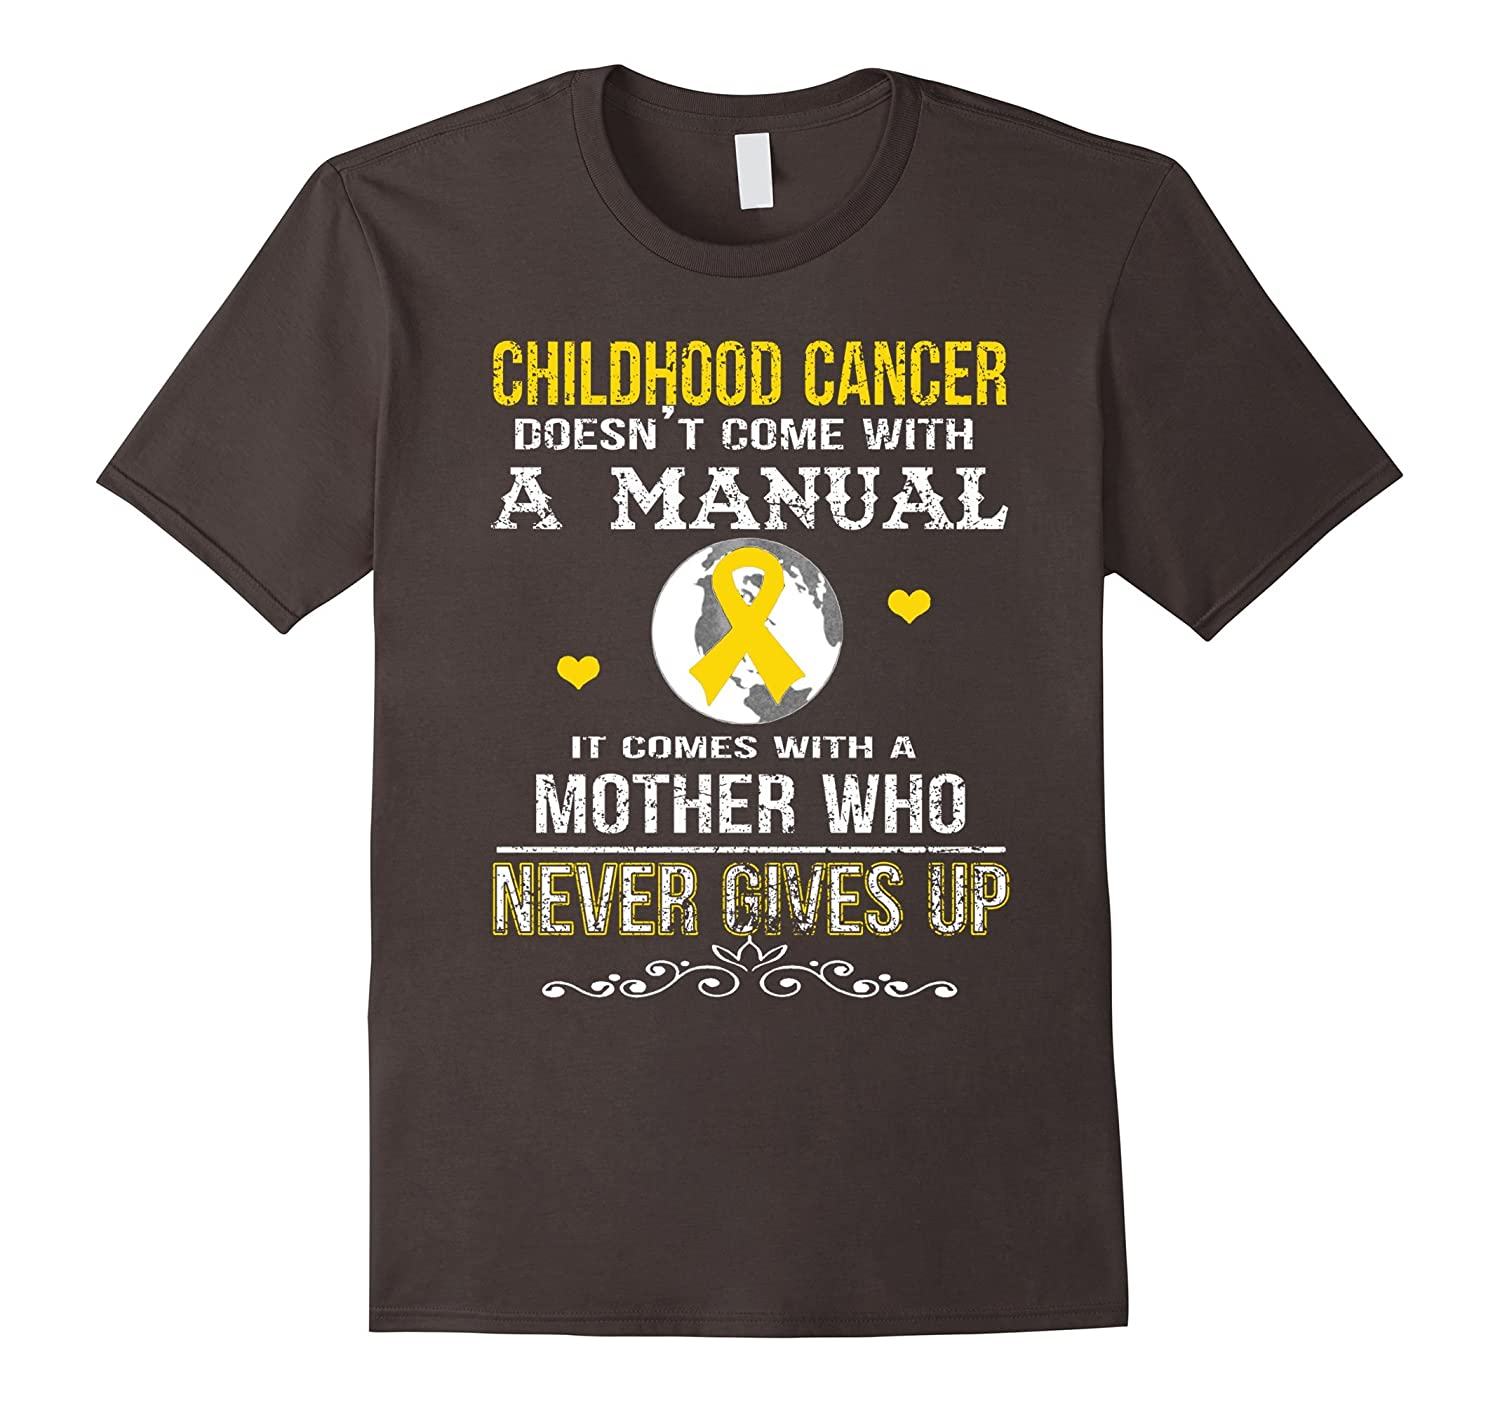 childhood cancer comes with a mother who never gives up